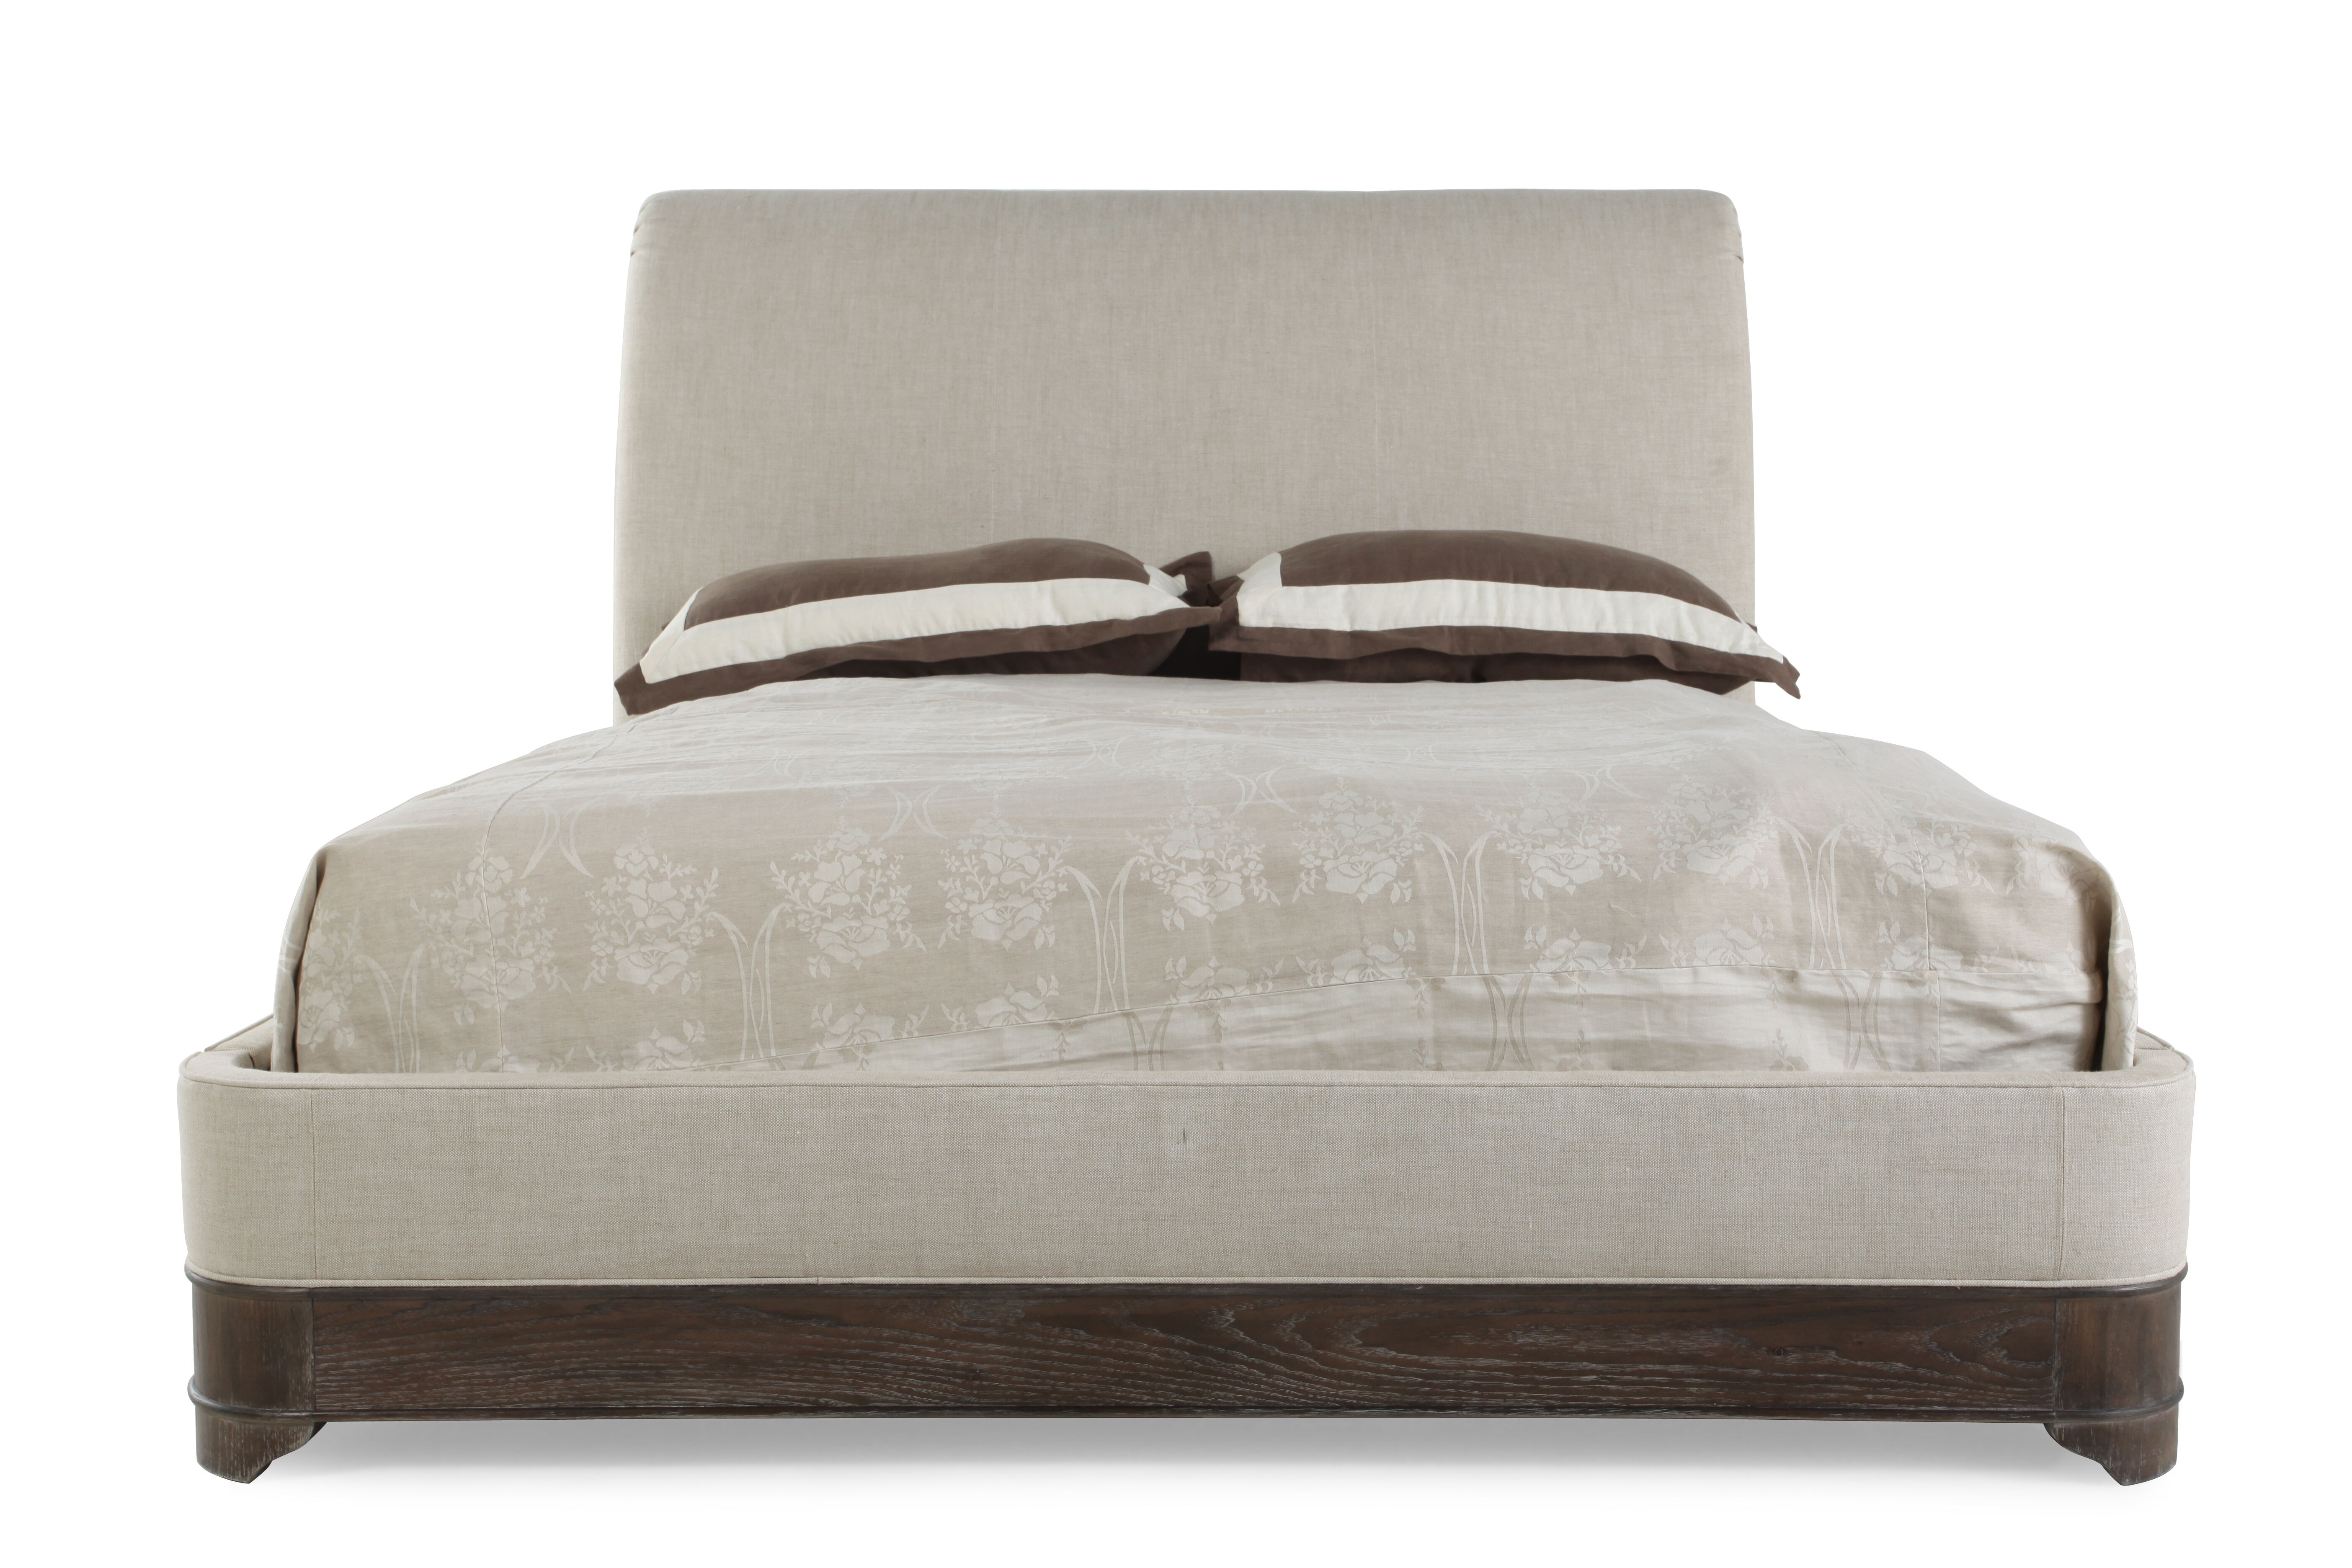 63u0026quot; Radiata Solid Sleigh Bed In Gray